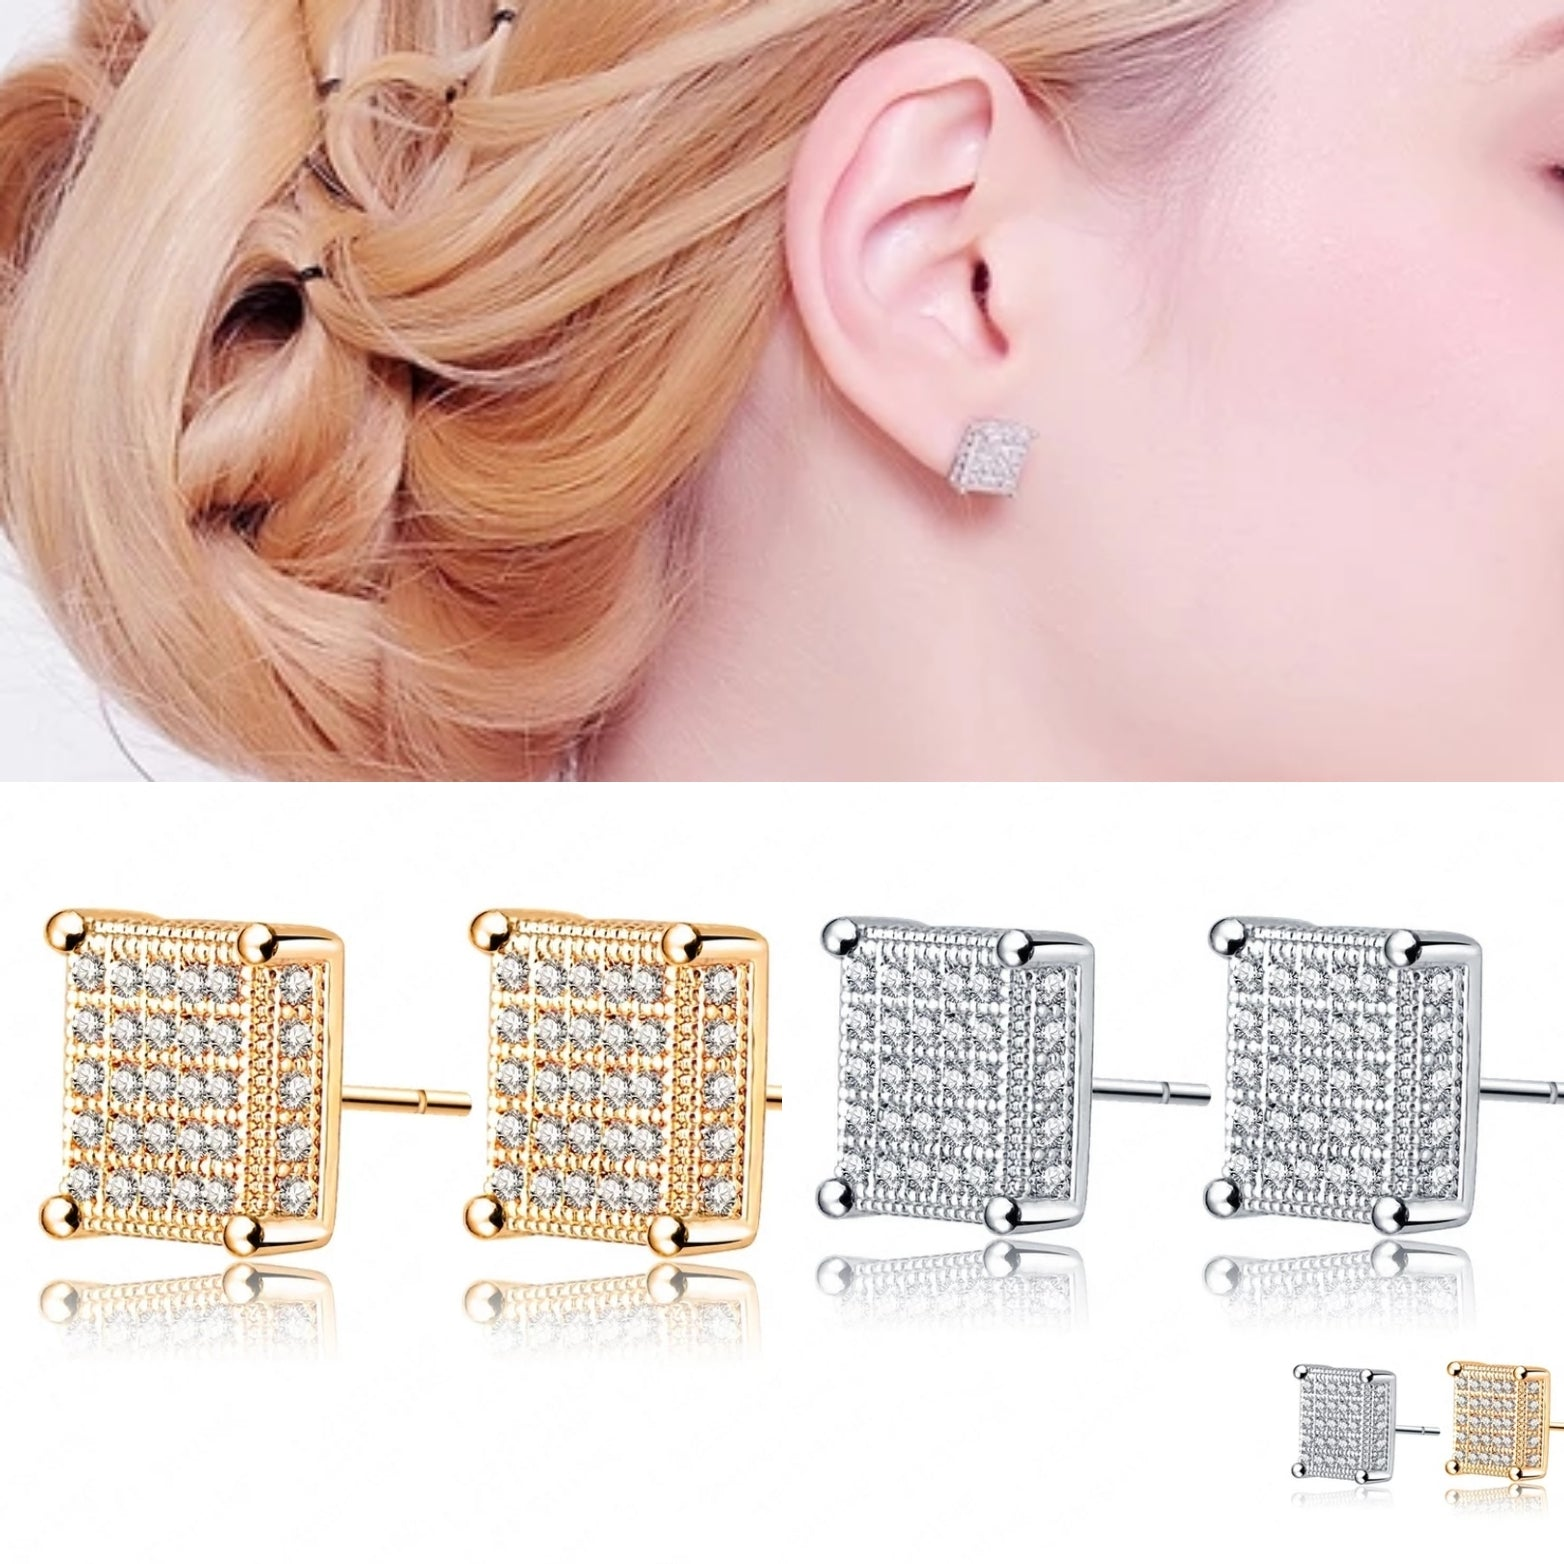 Earrings: Easy Elegance Square Stud Earrings